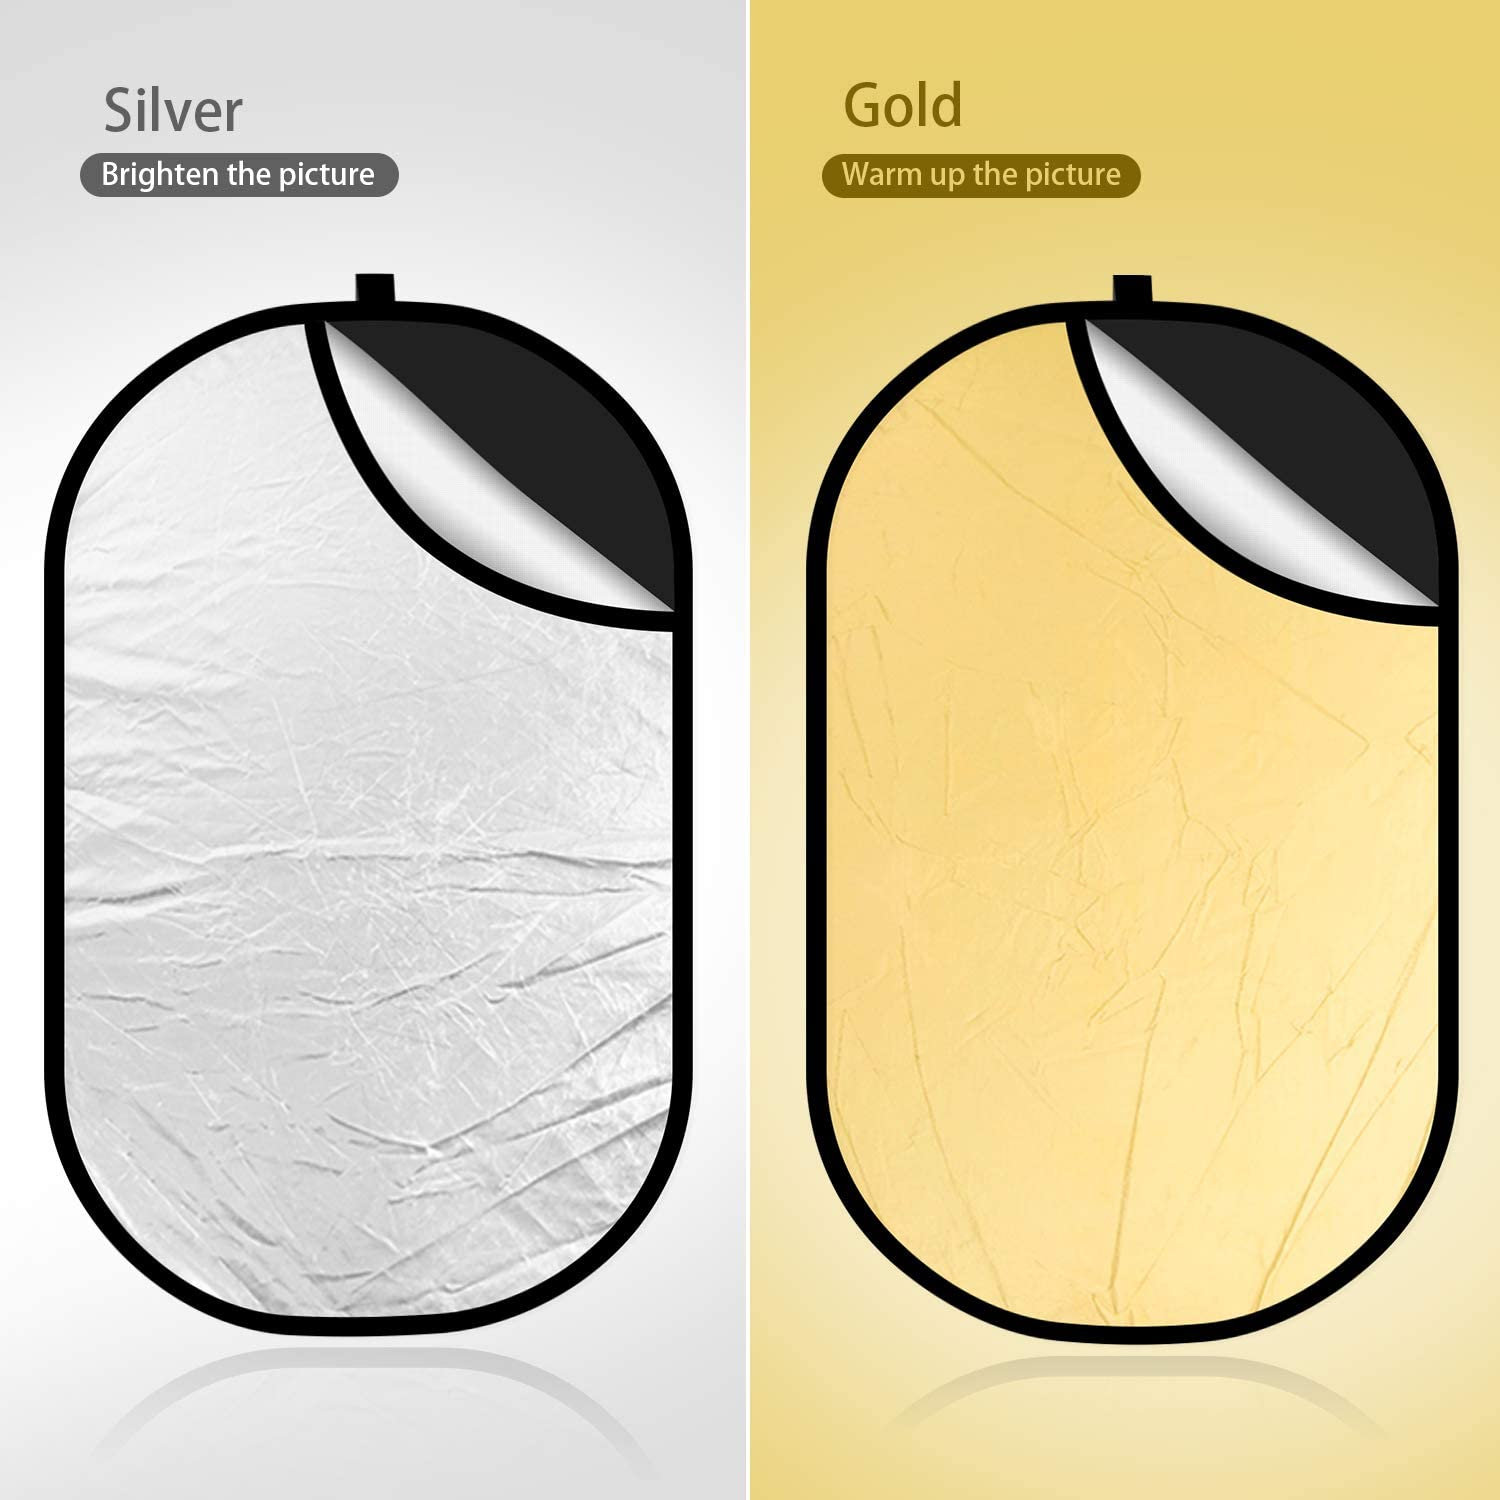 4-in-1 Foldable Backdrop 59 x 78 Reflector Photography Photo Studio Portable Collapsible Oval Large Light Reflectors//Diffuser Accessories Kit with Carrying Case for Outdoor Camera Vedio Lighting